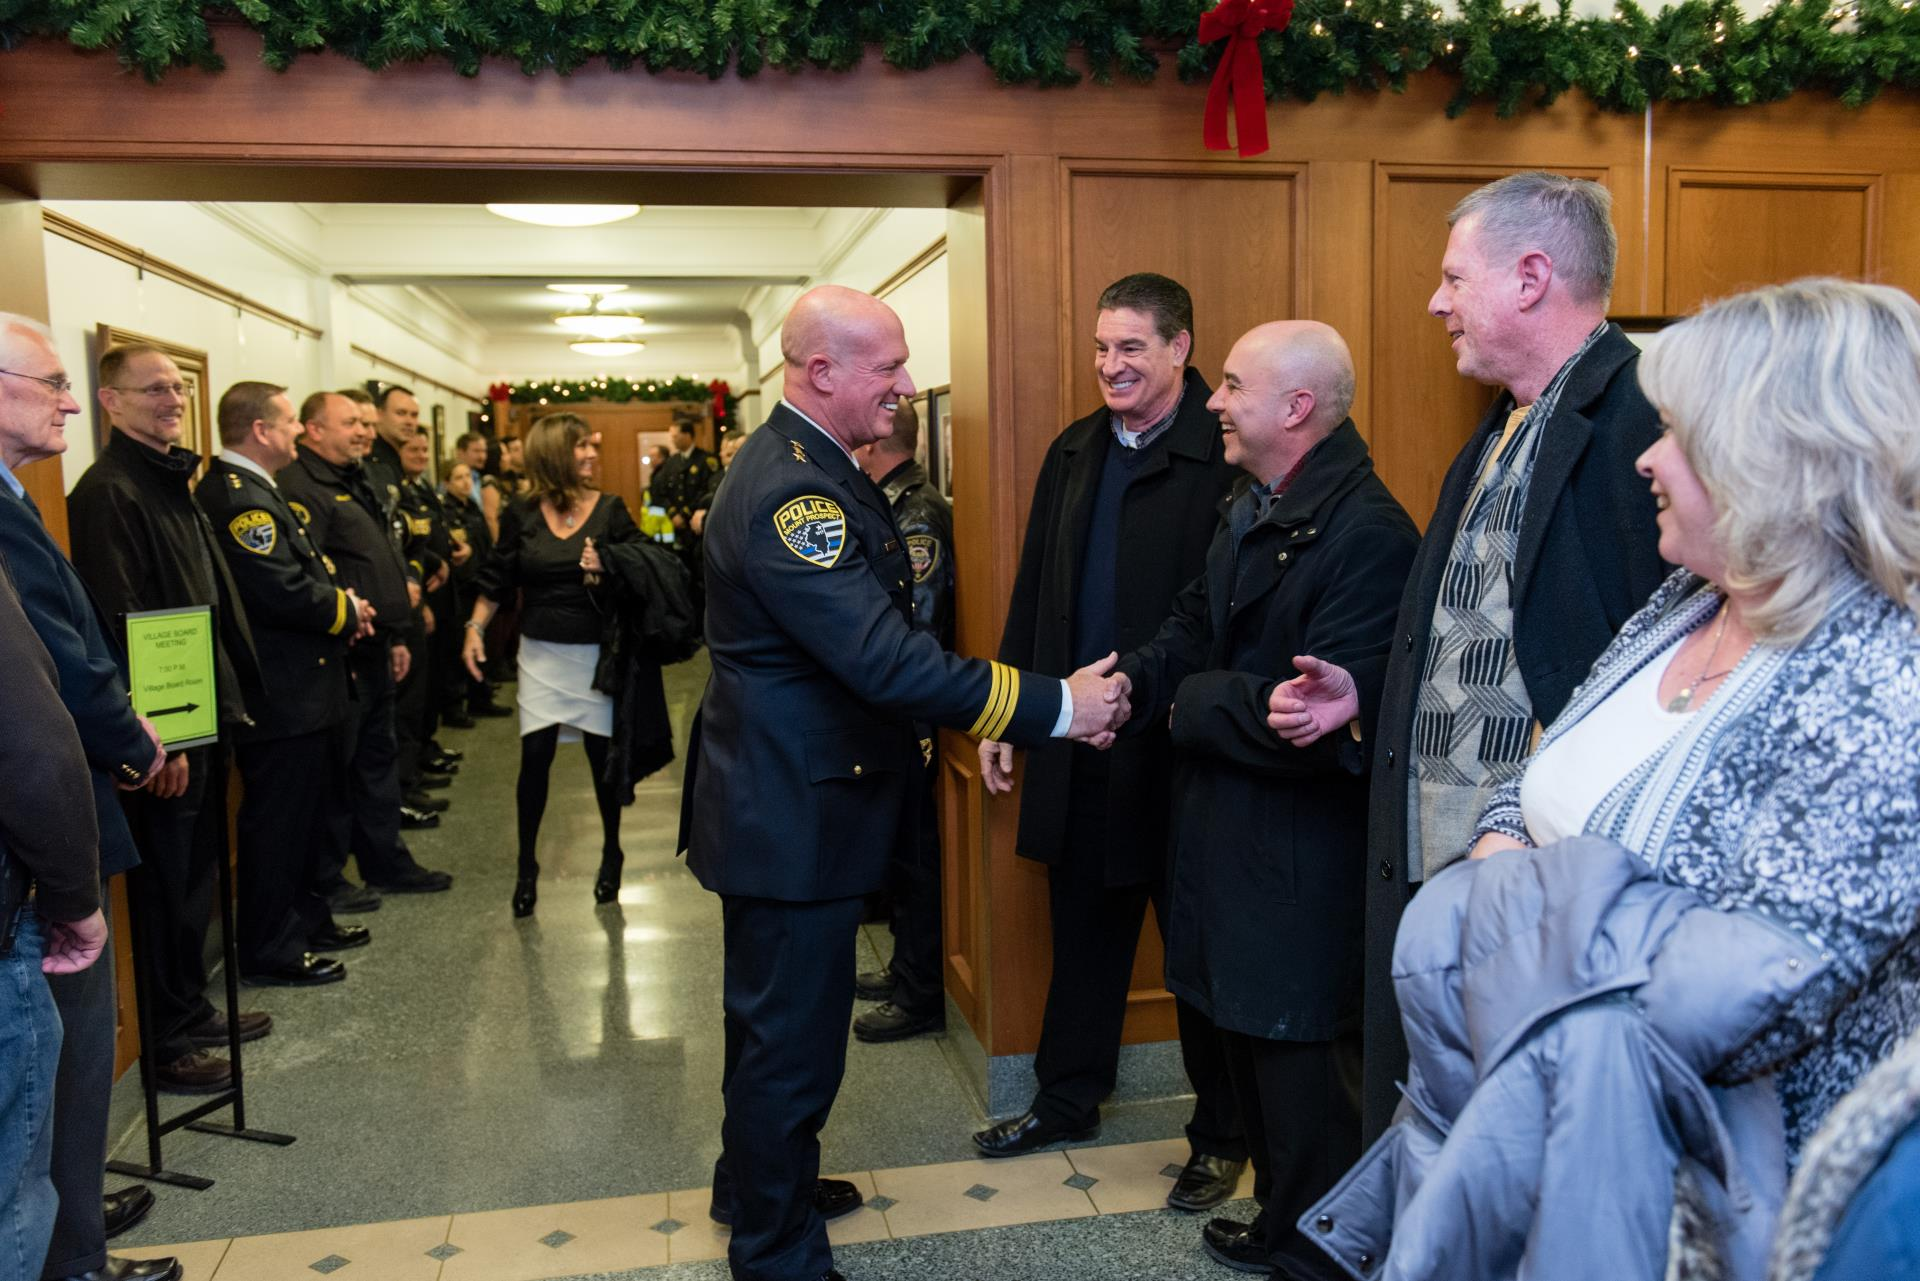 Chief Koziol Swearing-In Ceremony Final-4285